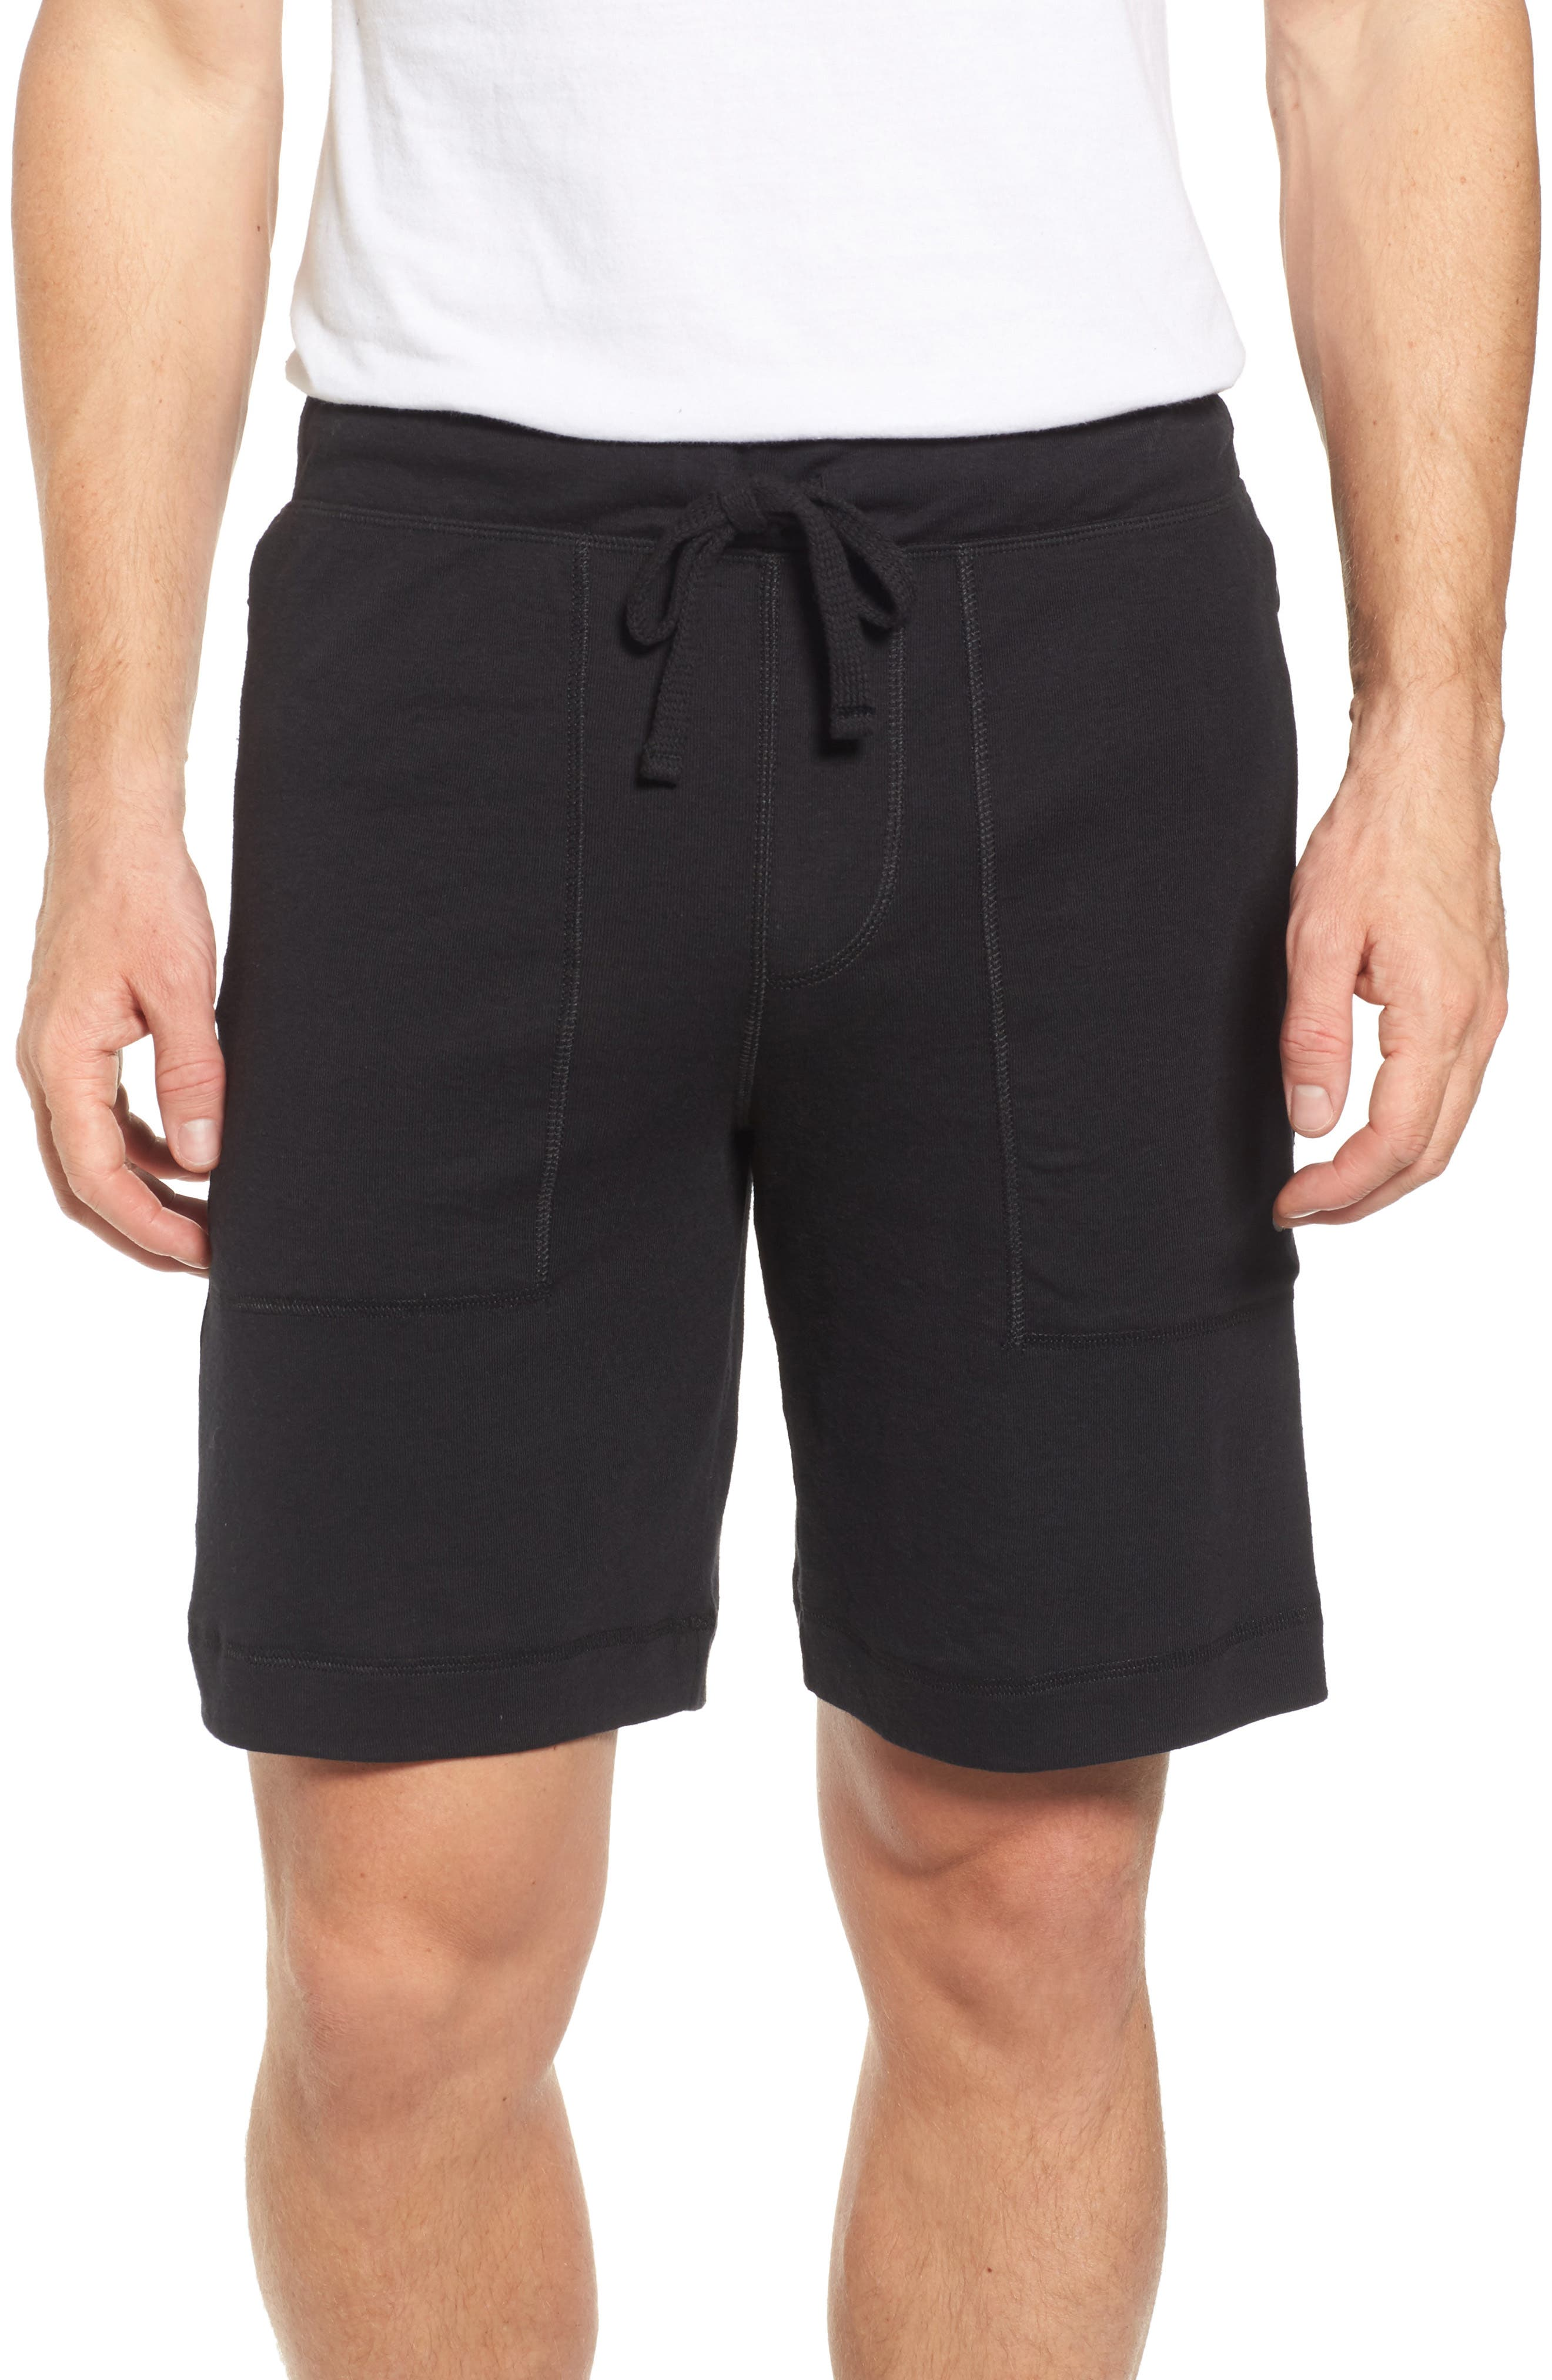 Alternate Image 1 Selected - Alo Revival Relaxed Knit Shorts